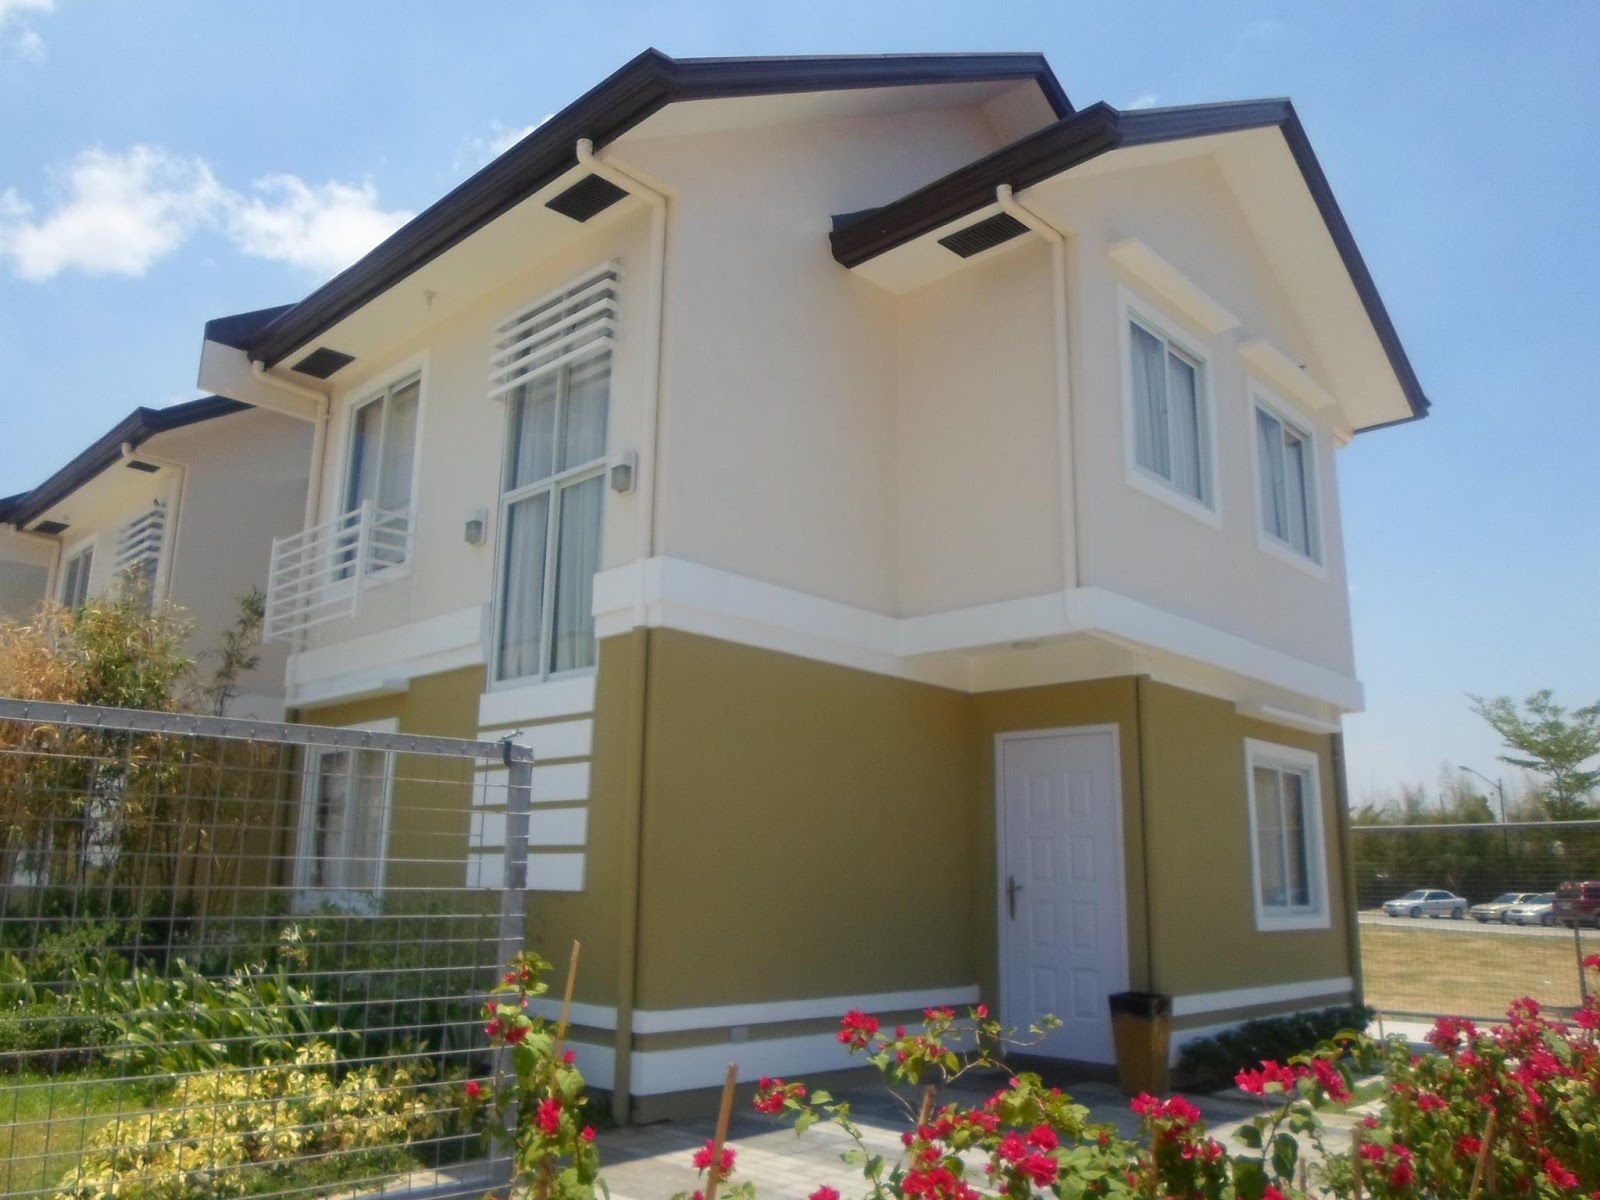 Affordable house design in the philippines lancaster new for House models in the philippines